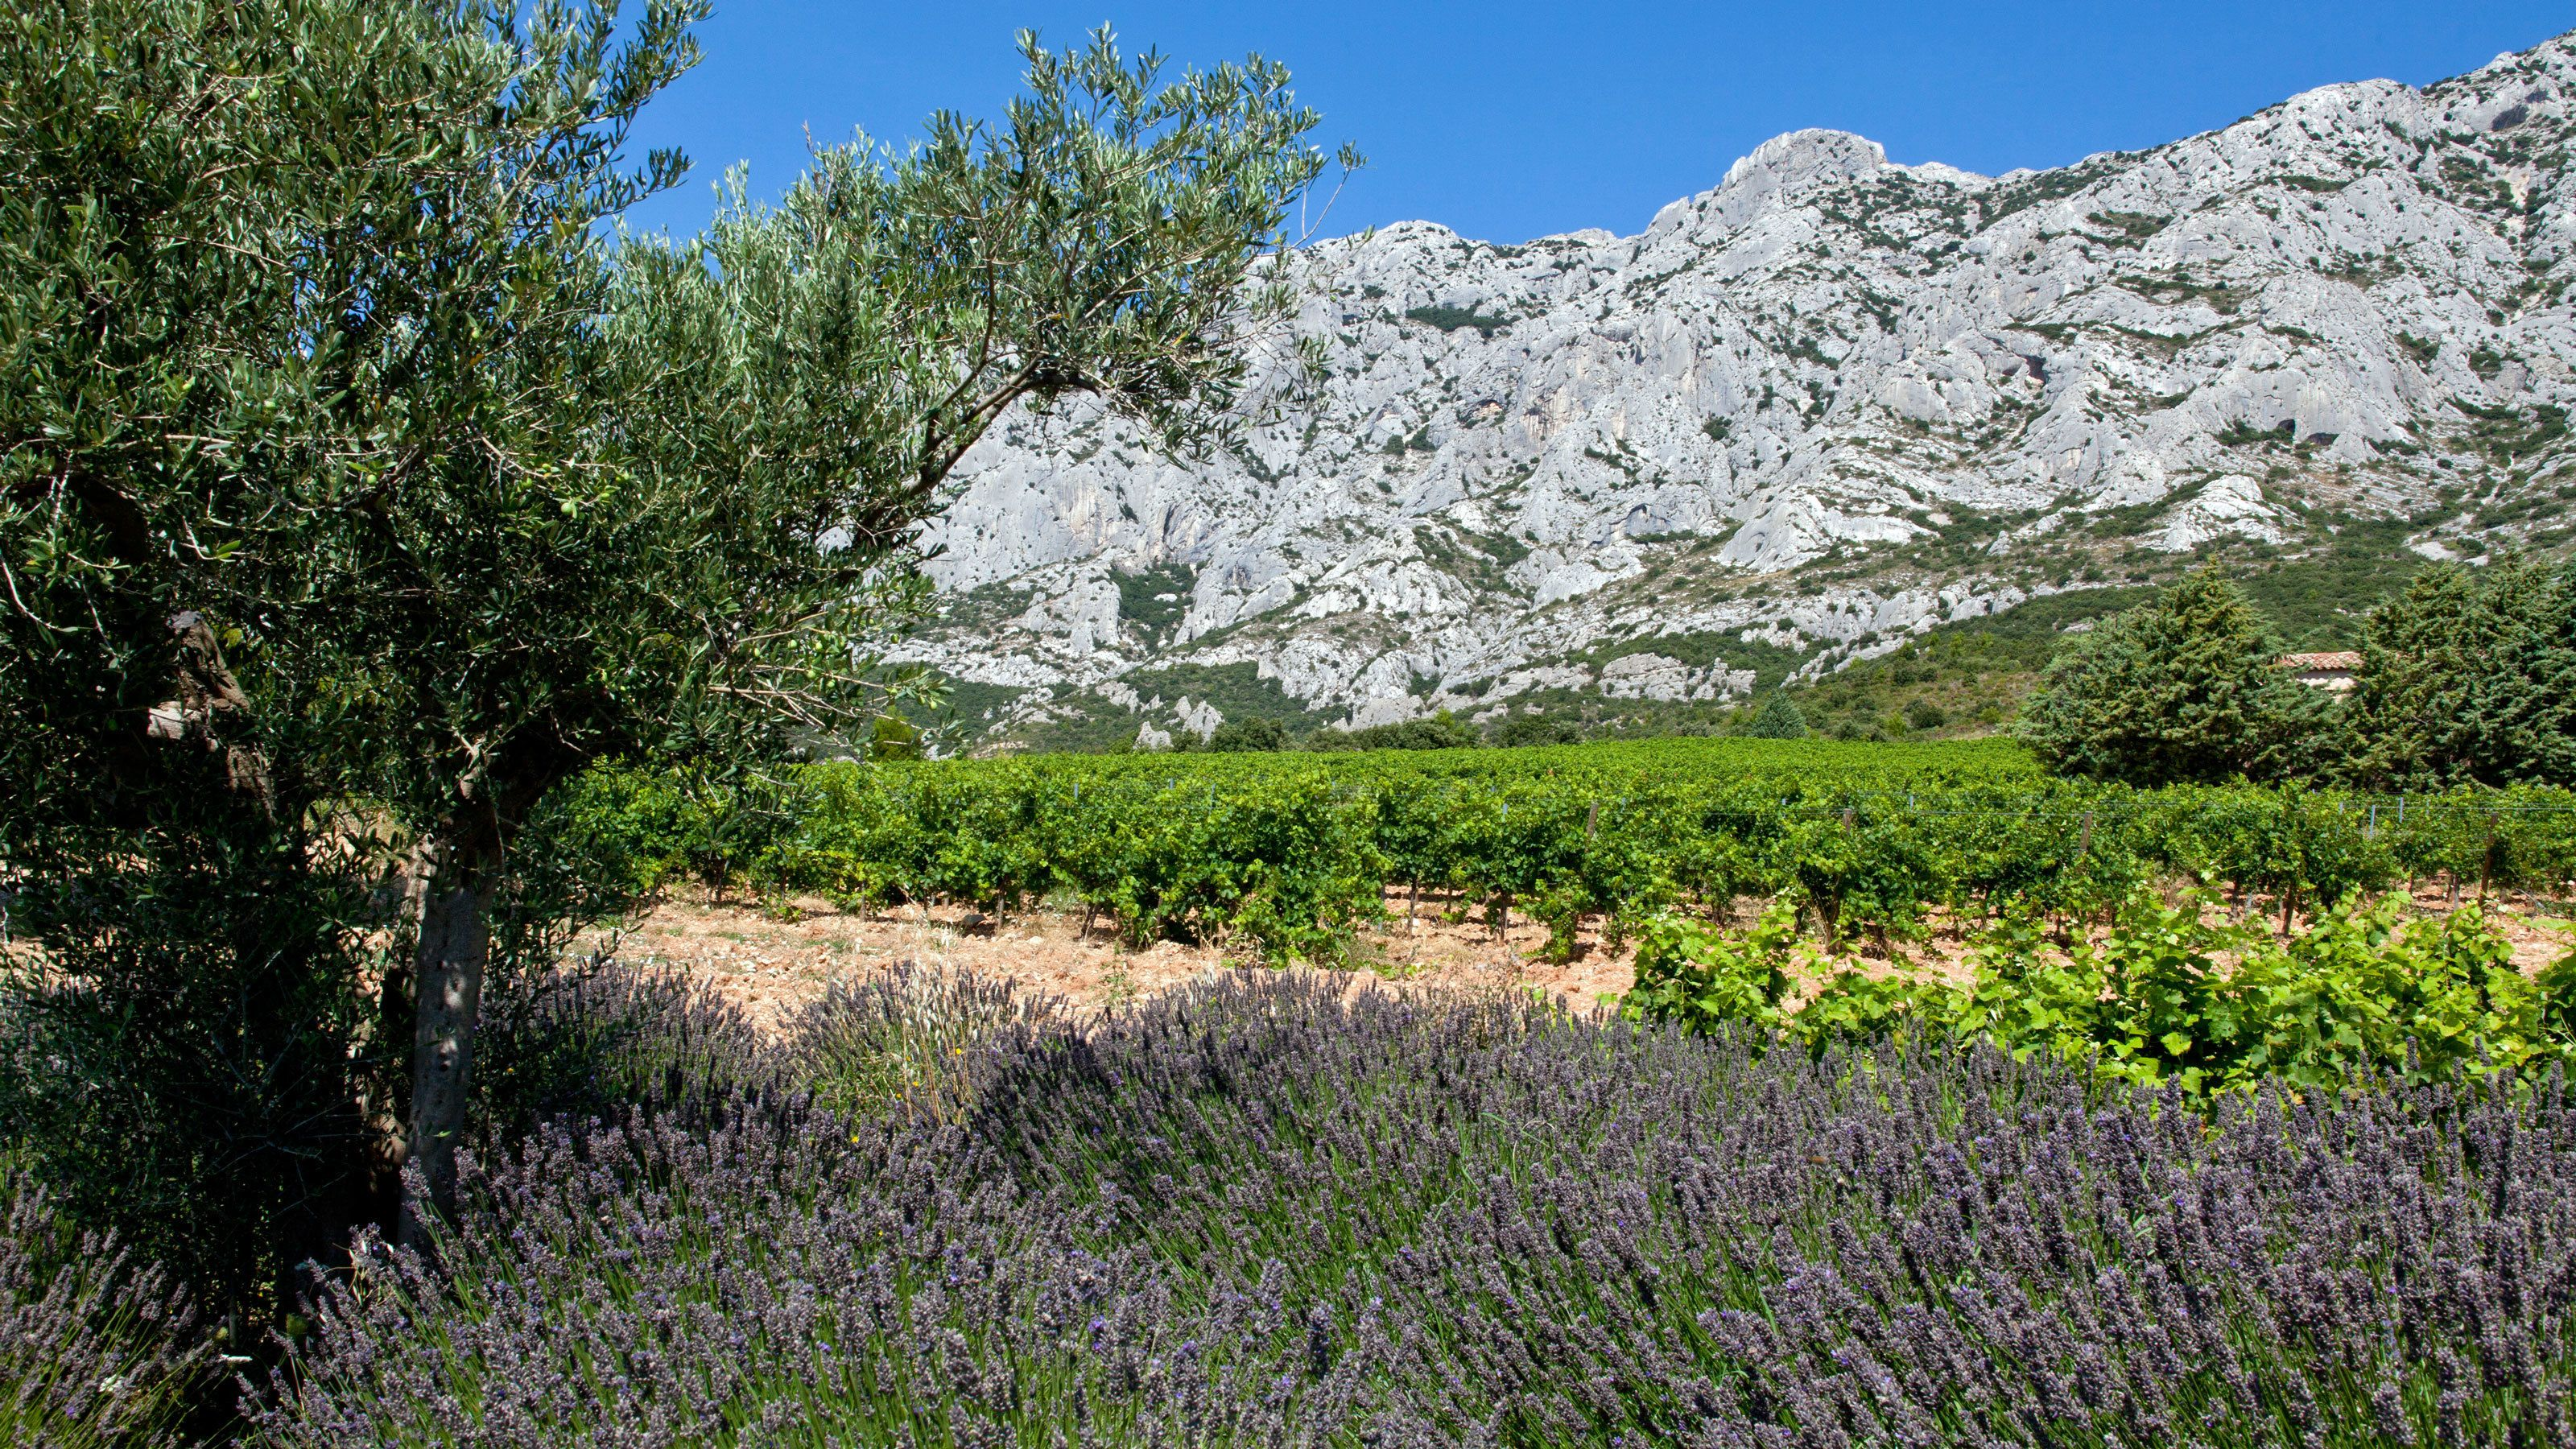 lavender fields and hills at Coteaux d'Aix Marseille